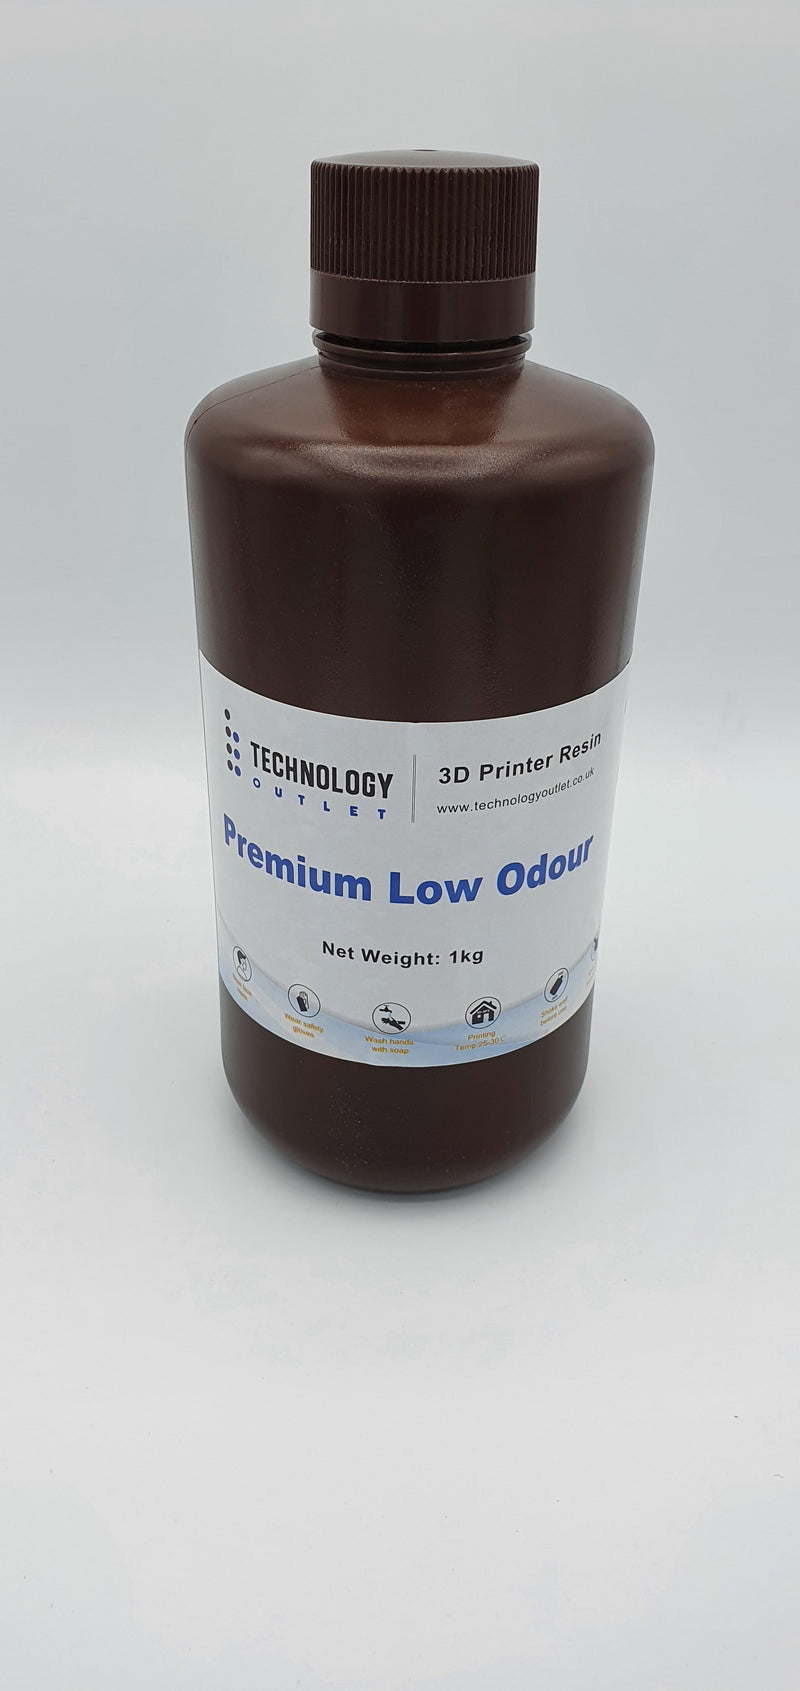 Technology Outlet Premium LOW ODOUR 3D Printer Resin